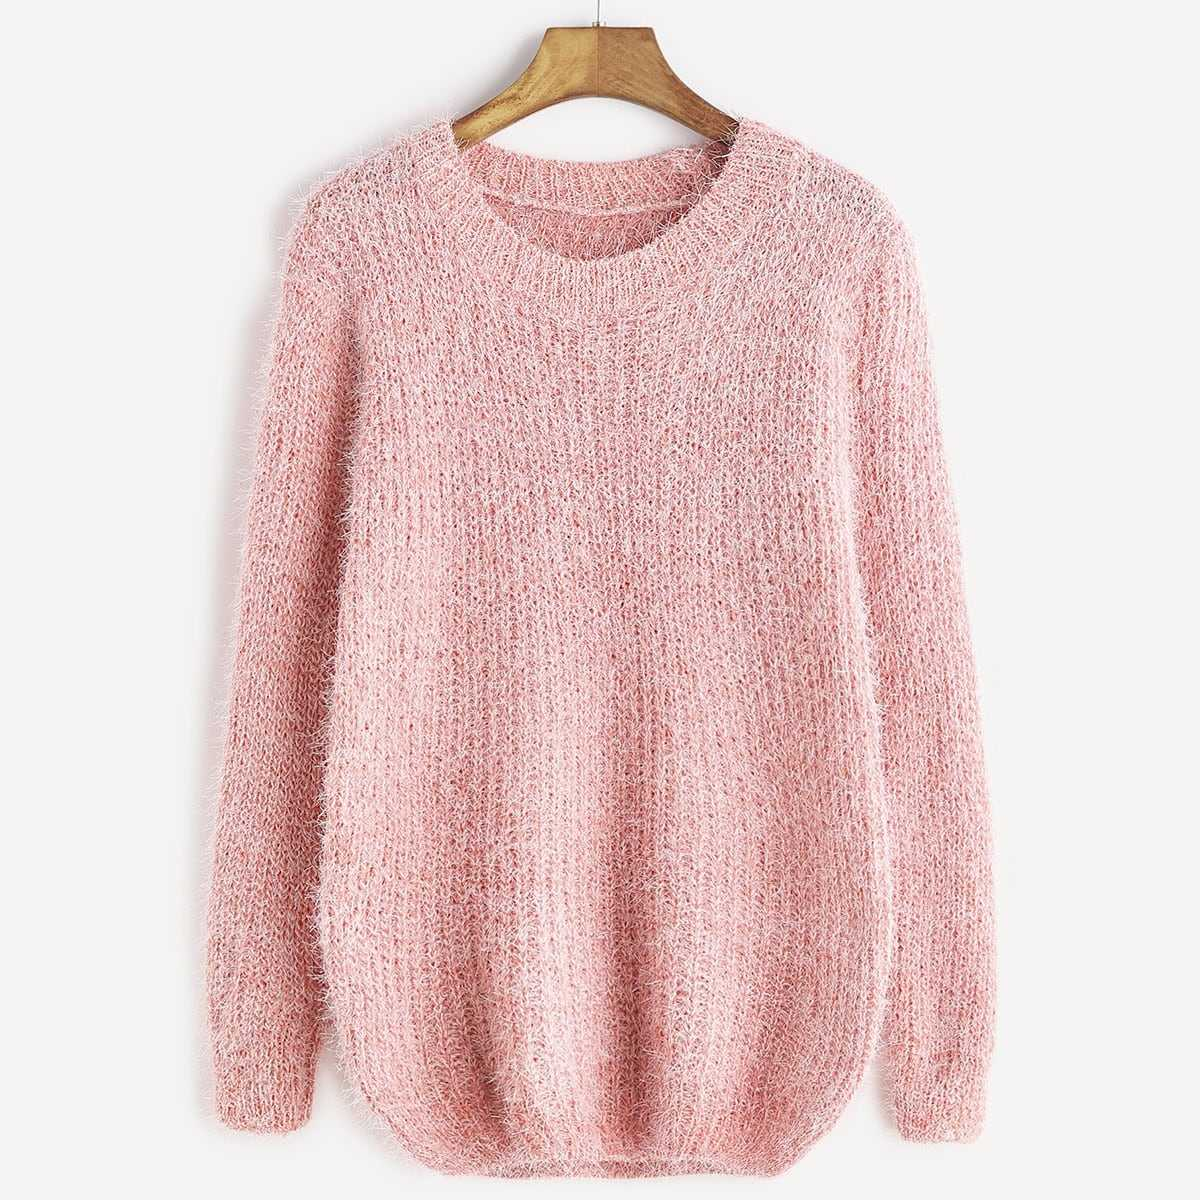 Fuzzy Chunky Knit Sweater in Pink by ROMWE on GOOFASH